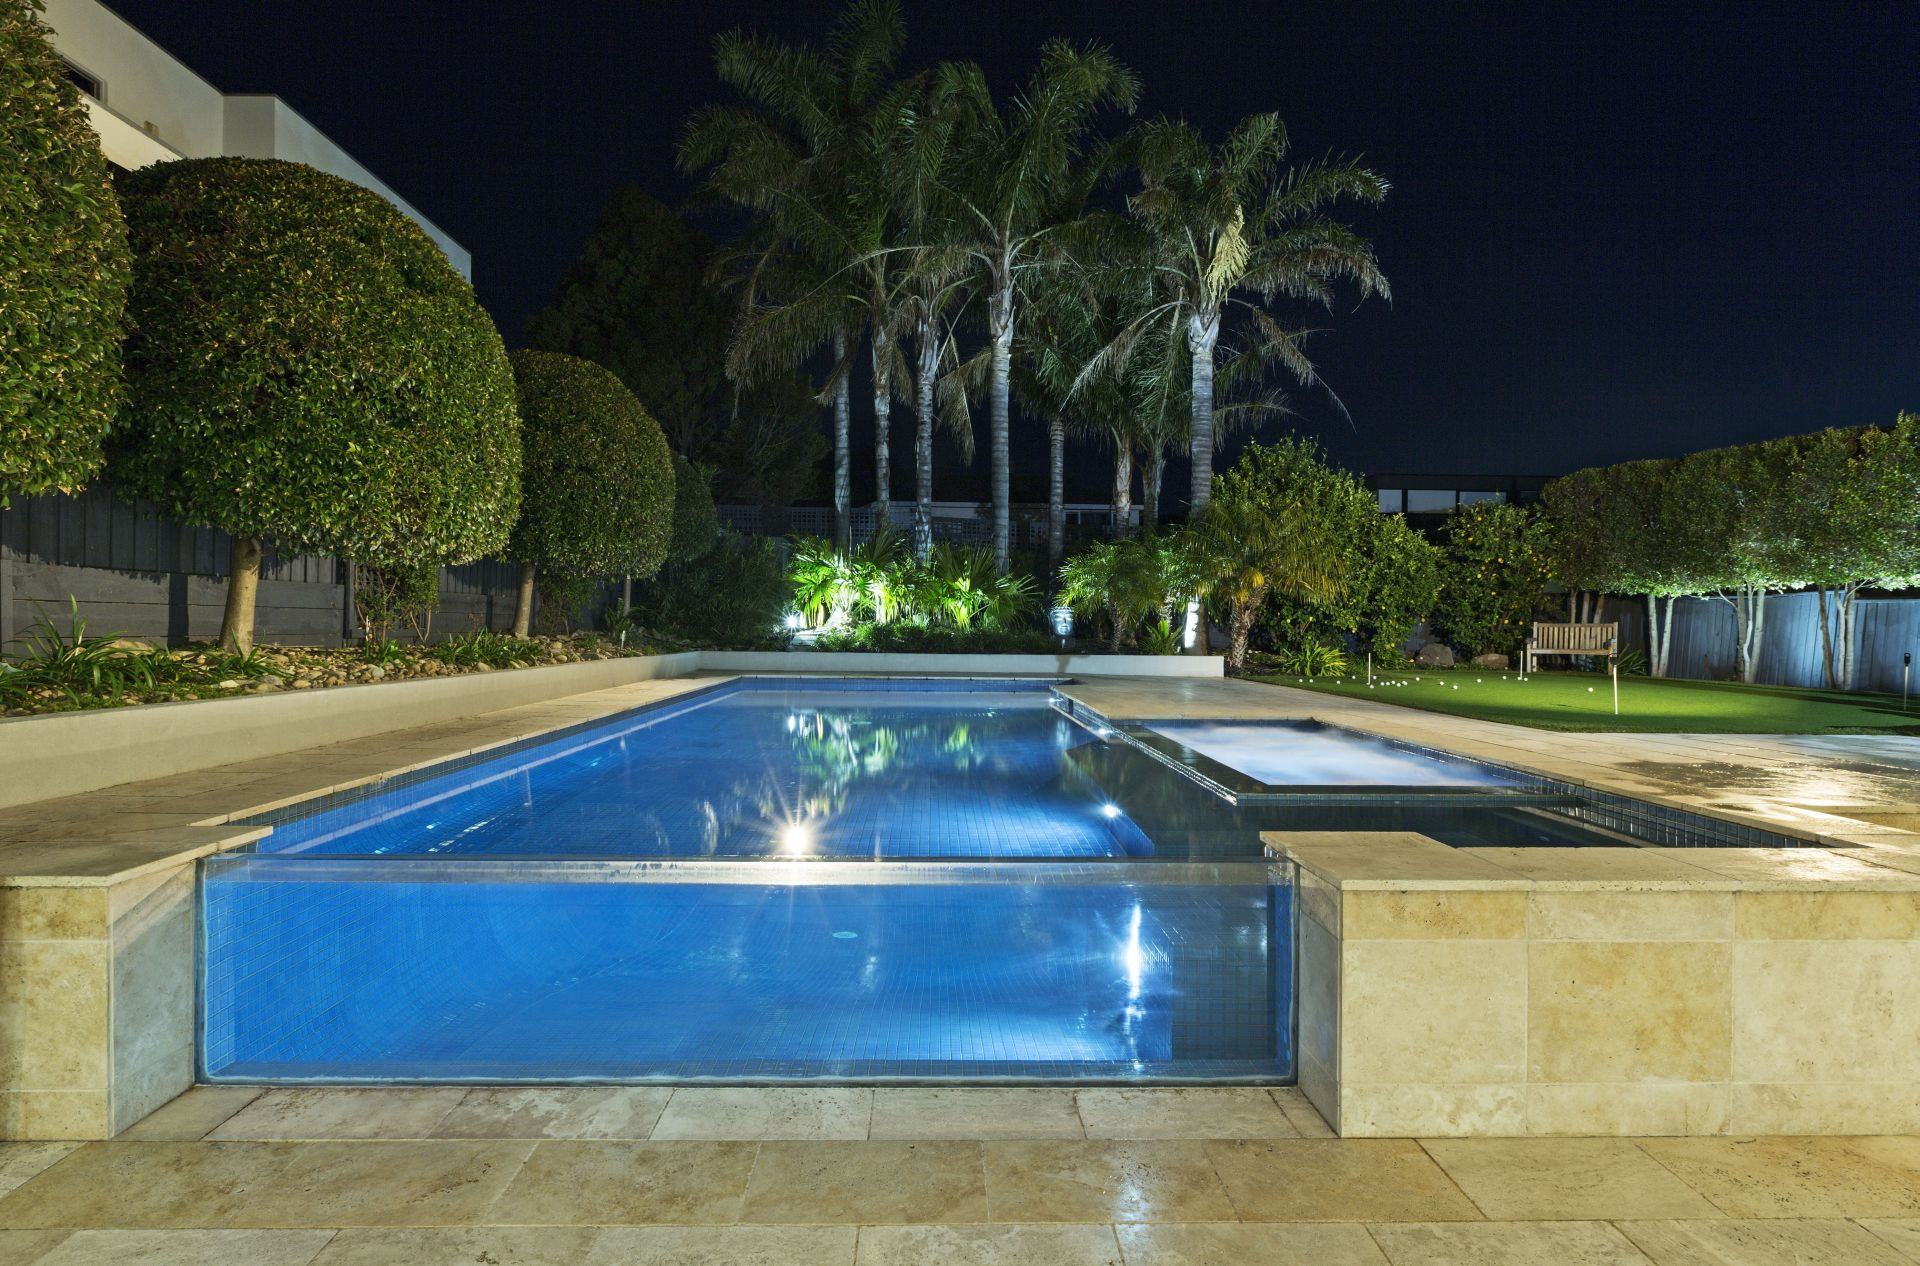 The customer came up with the idea to add a Acylic viewing panel on his existing pool – to this he advised his architect who renovated the home with acrylic viewing window as the showpiece.